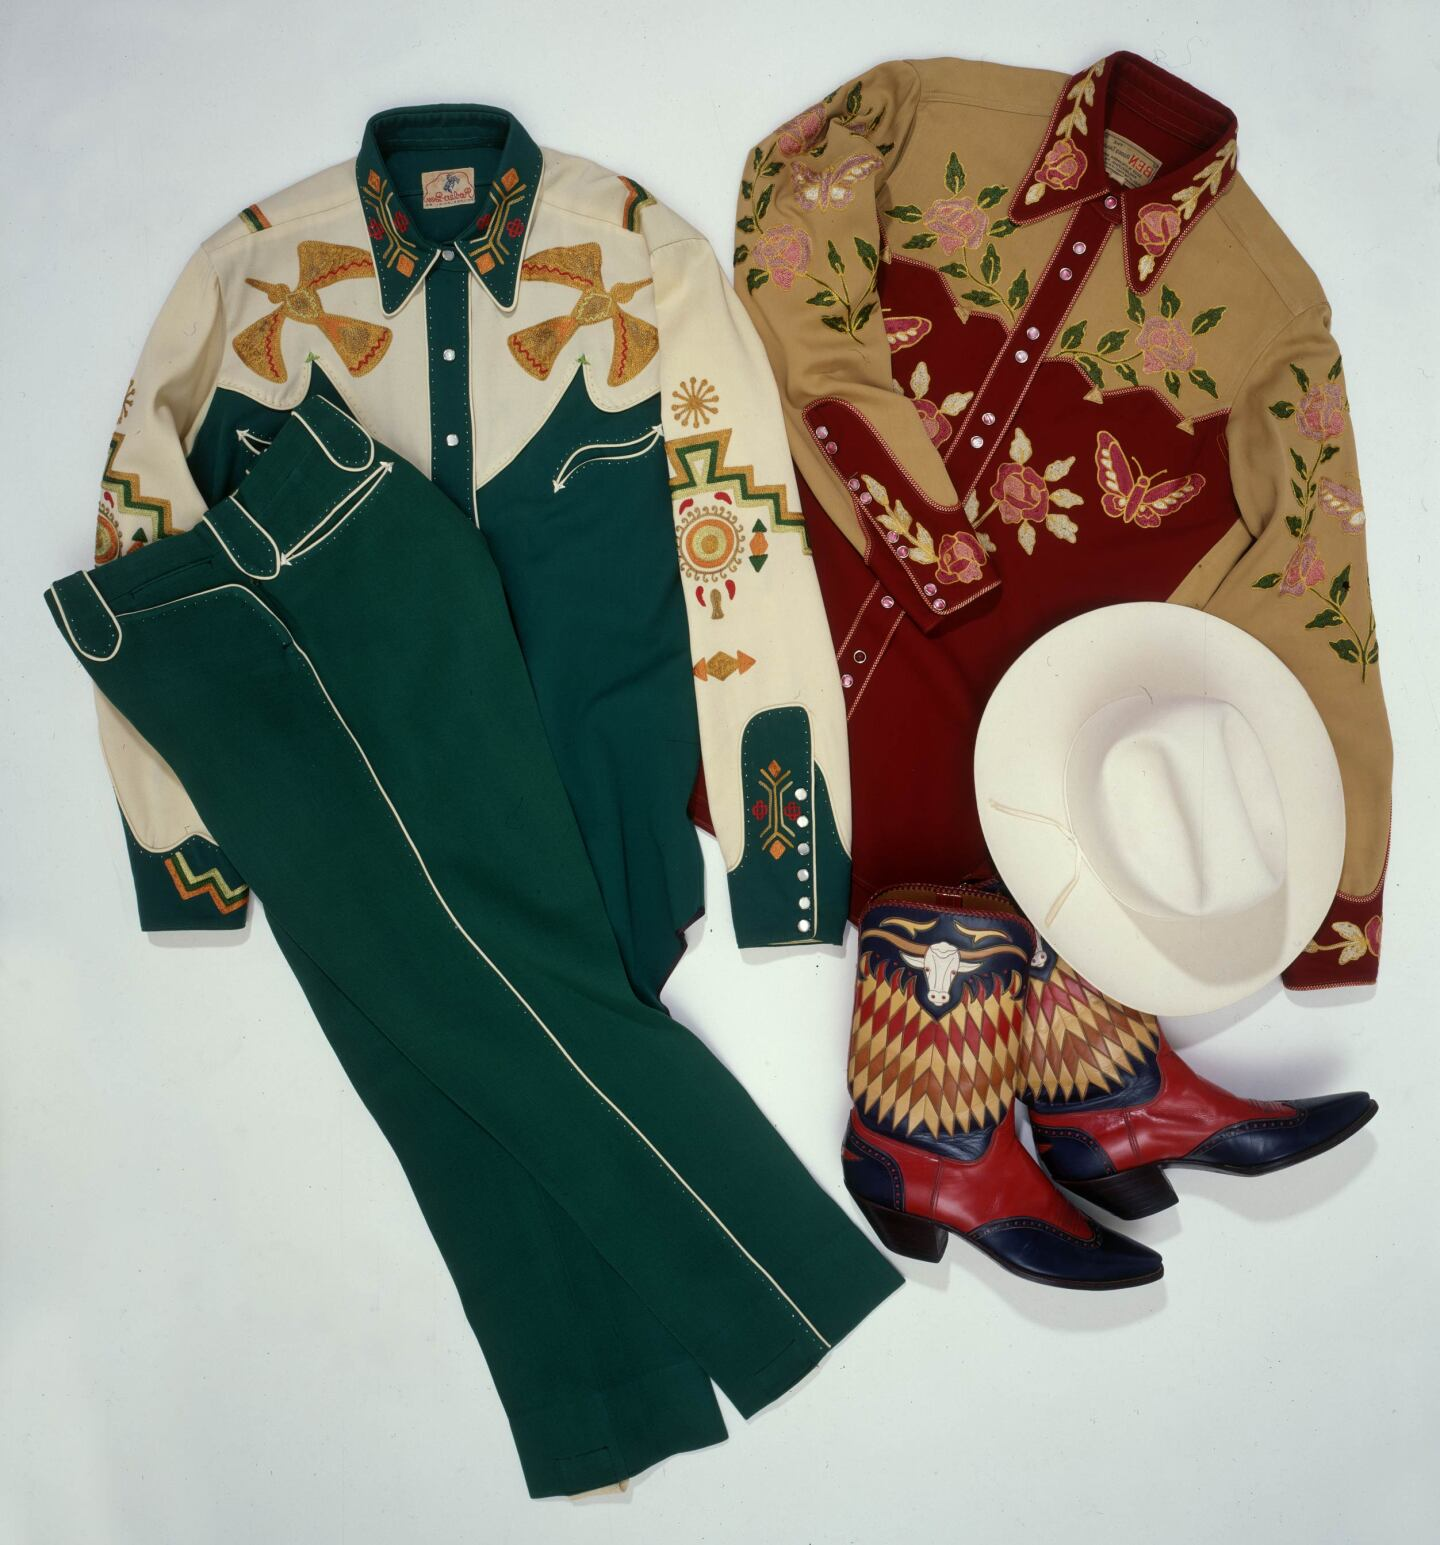 Gene Autry's fanciest stage outfits included these examples made by Rodeo Ben | Courtesy of the Autry Museum of the American West